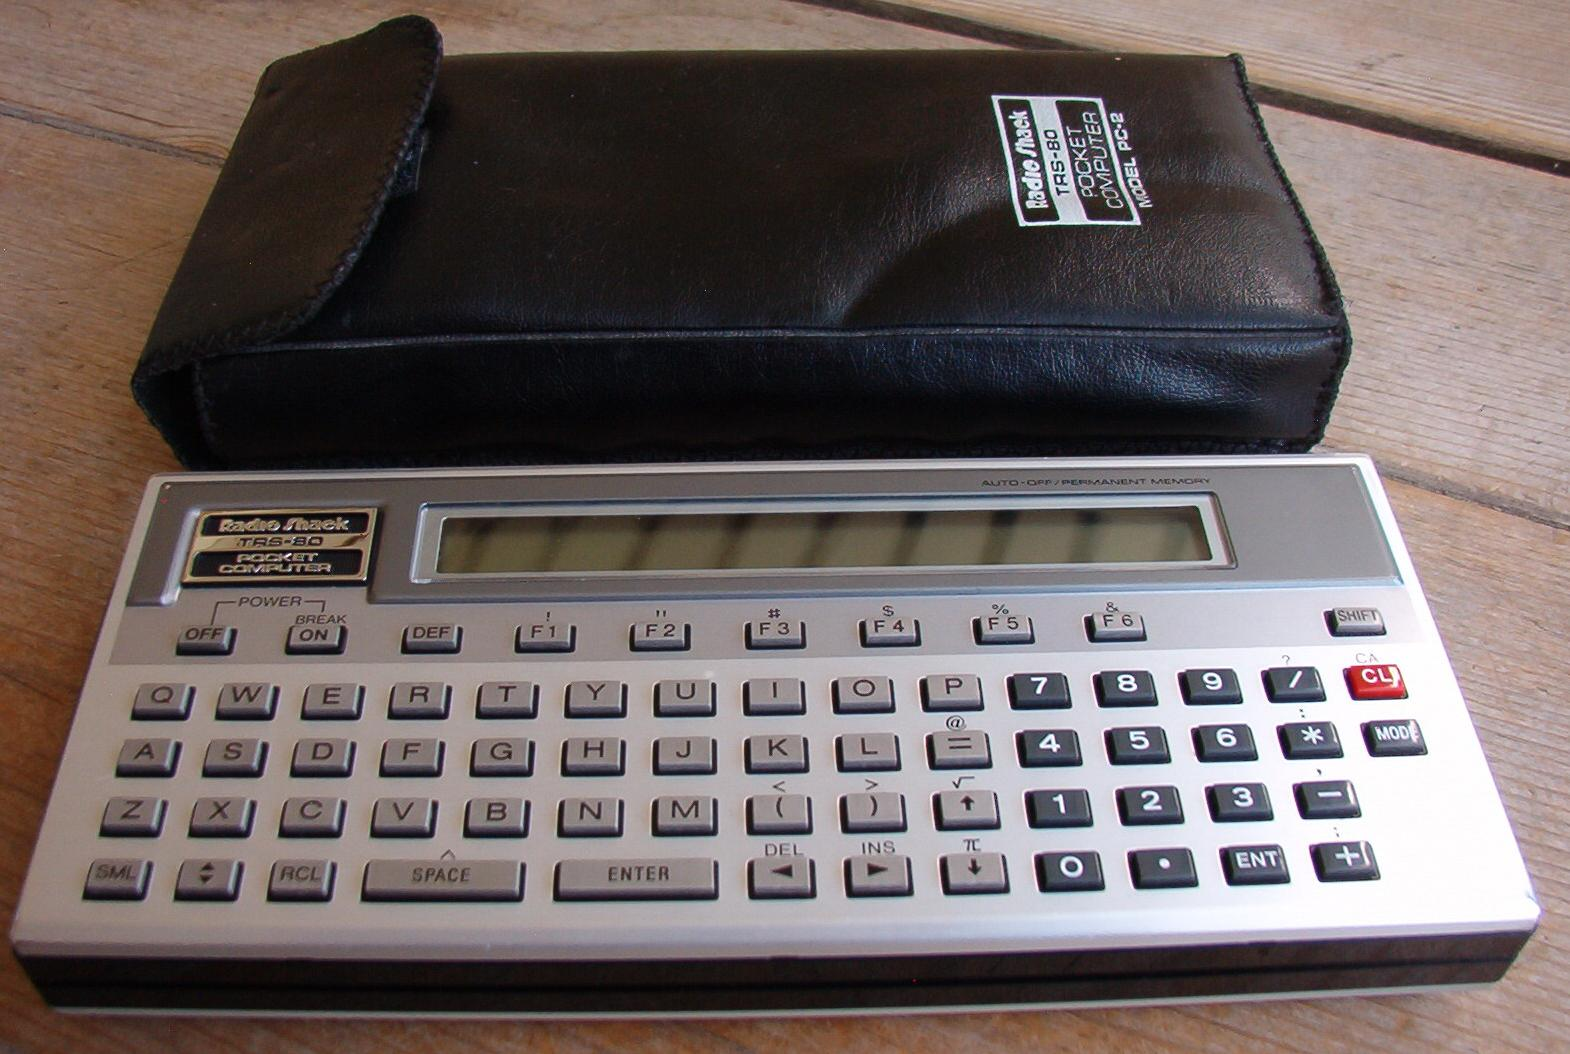 The Queen of Auctions Lynn Dralle's Radio Shack Vintage Calculator eBay Score